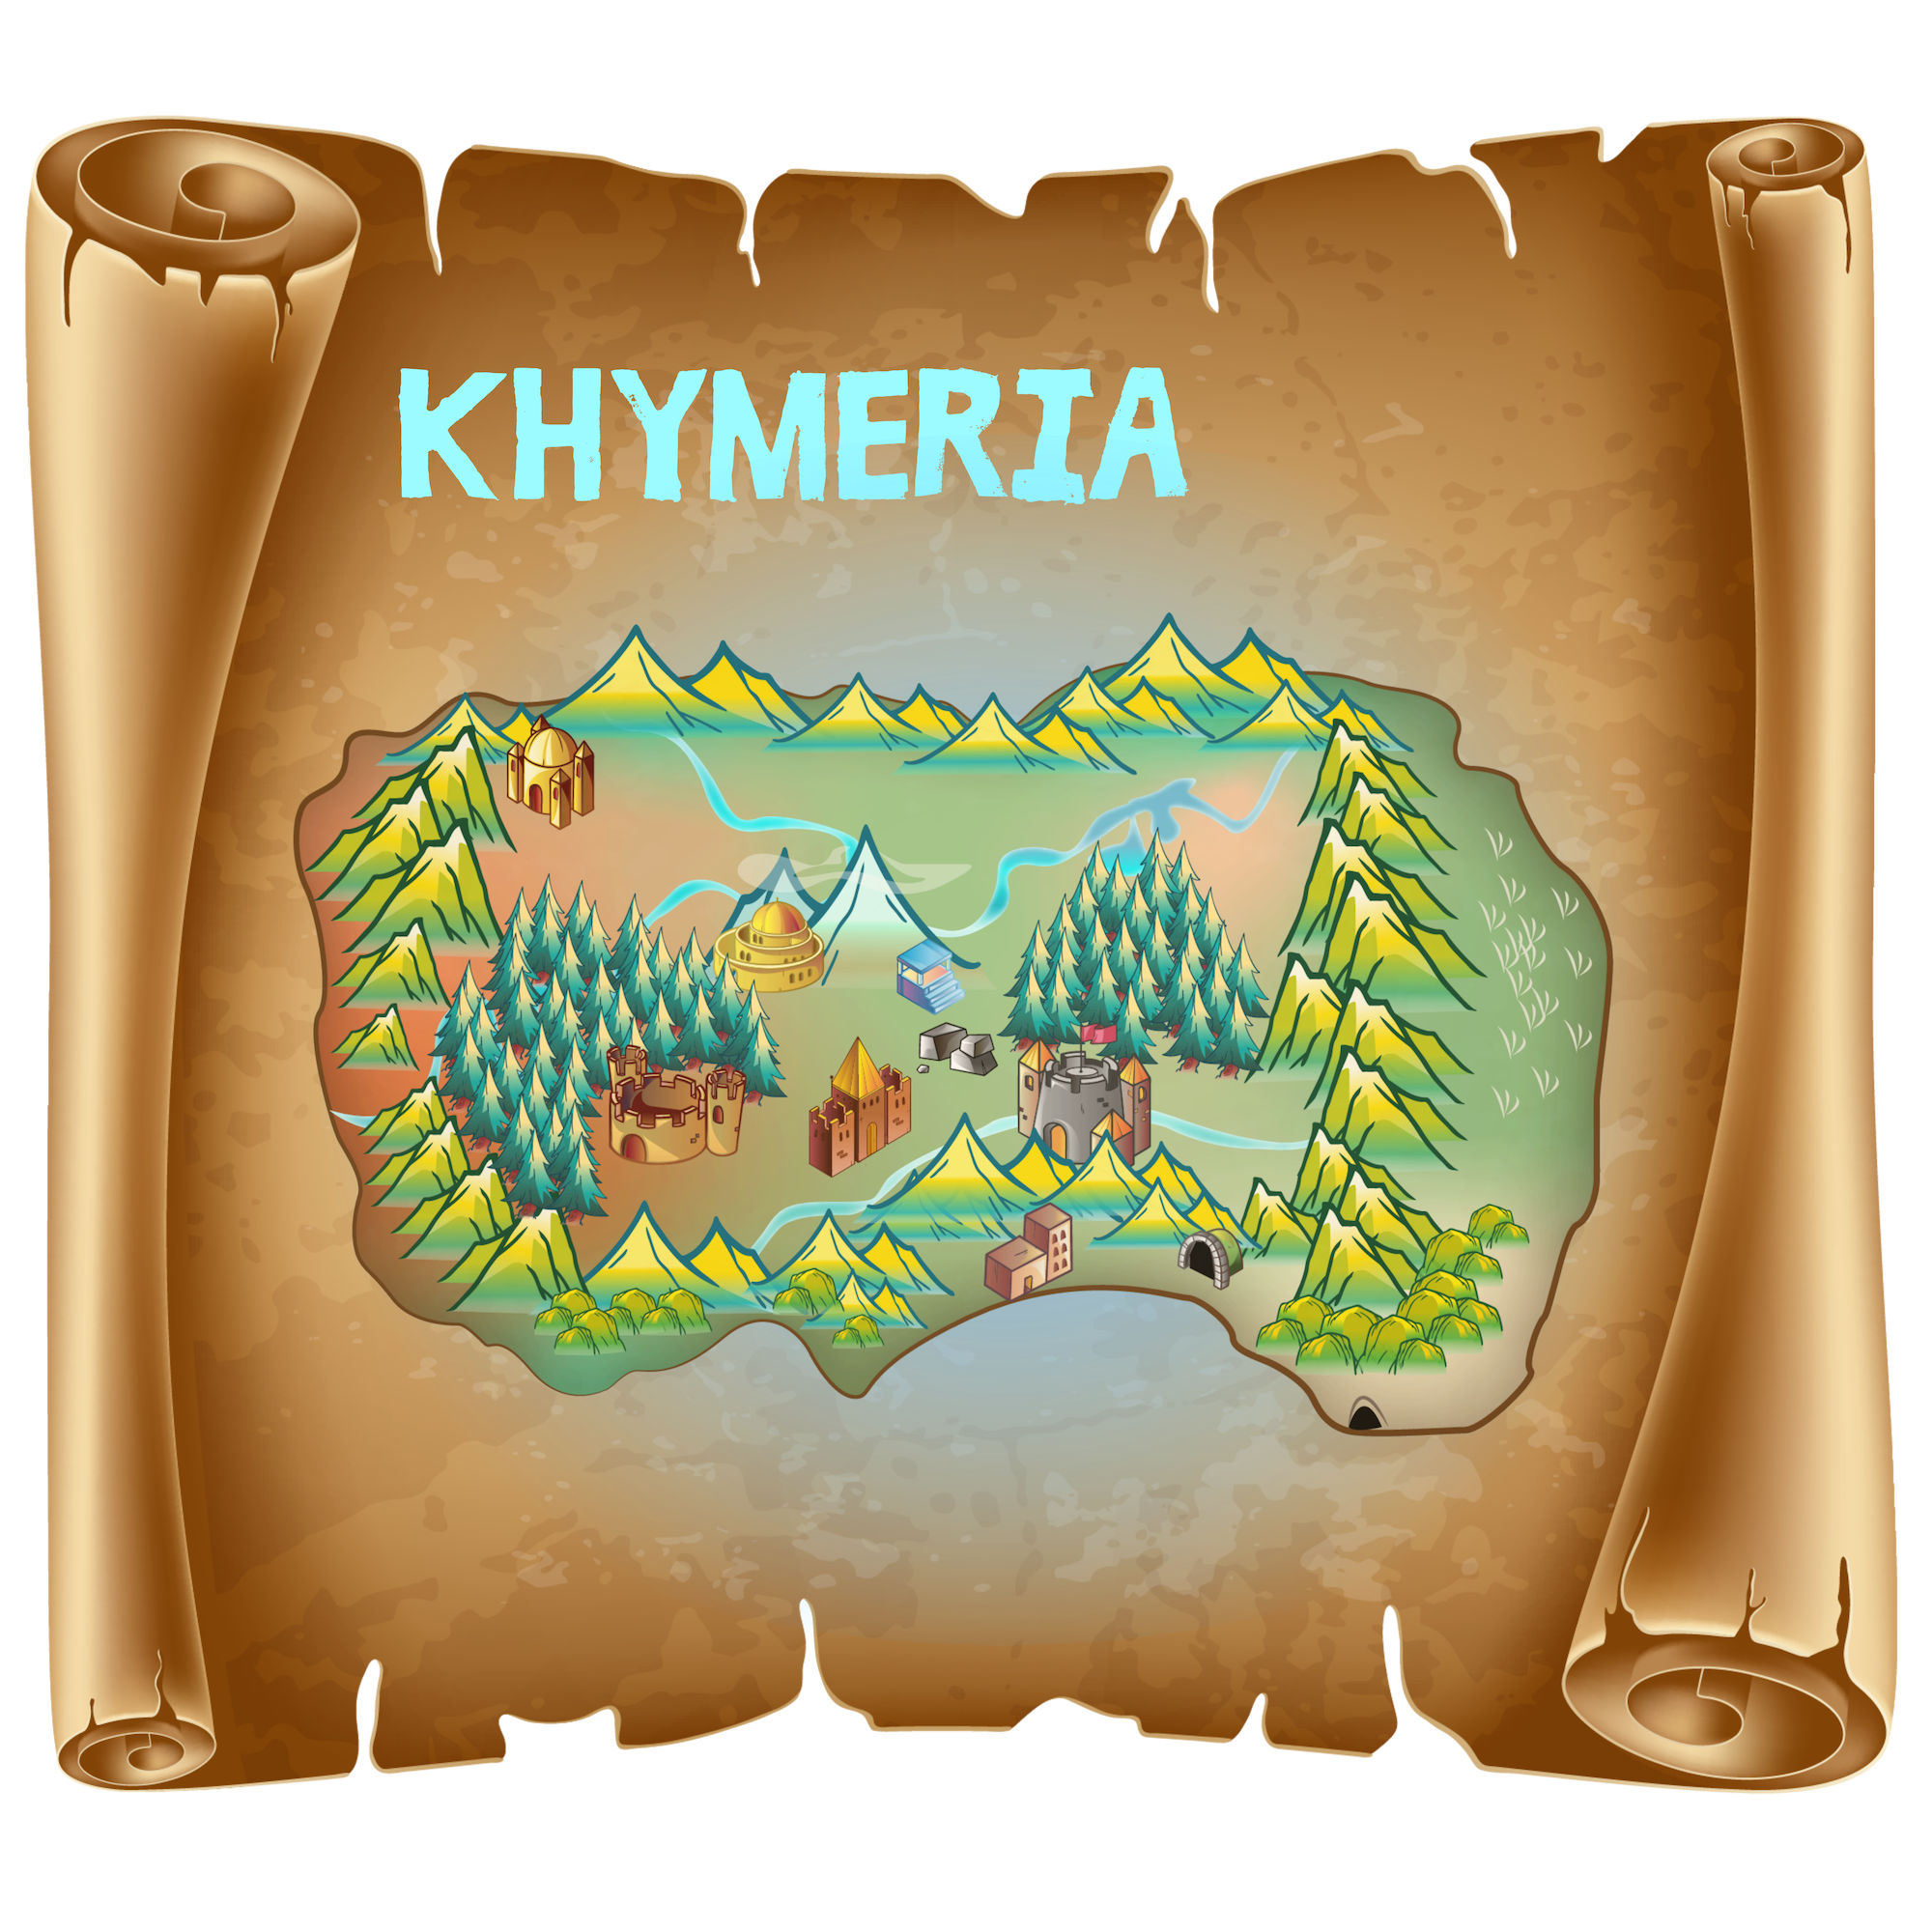 khymeria map no words.png